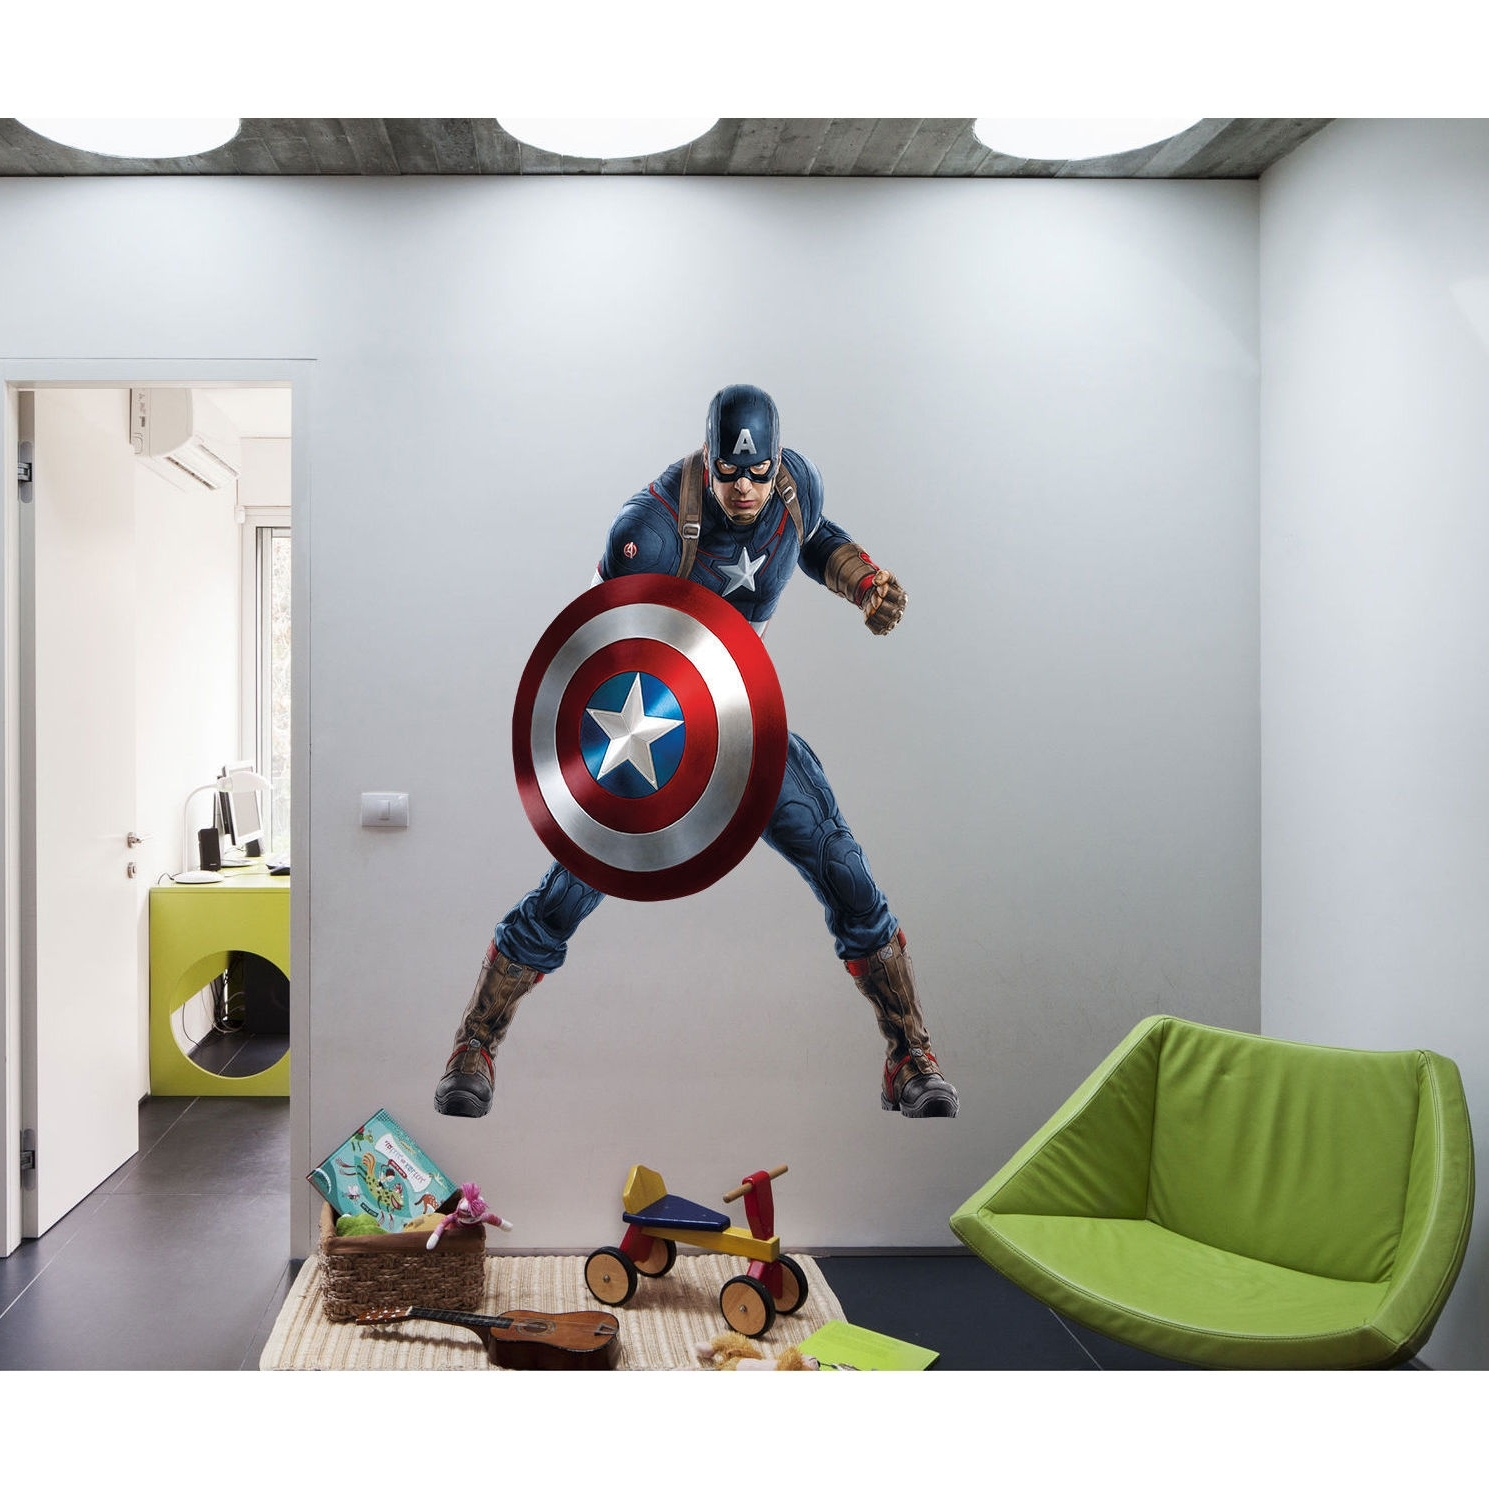 Captain America Wall Art Within Most Up To Date Shop Full Color Superhero Captain America Sticker, Decal, Wall Art (View 7 of 15)